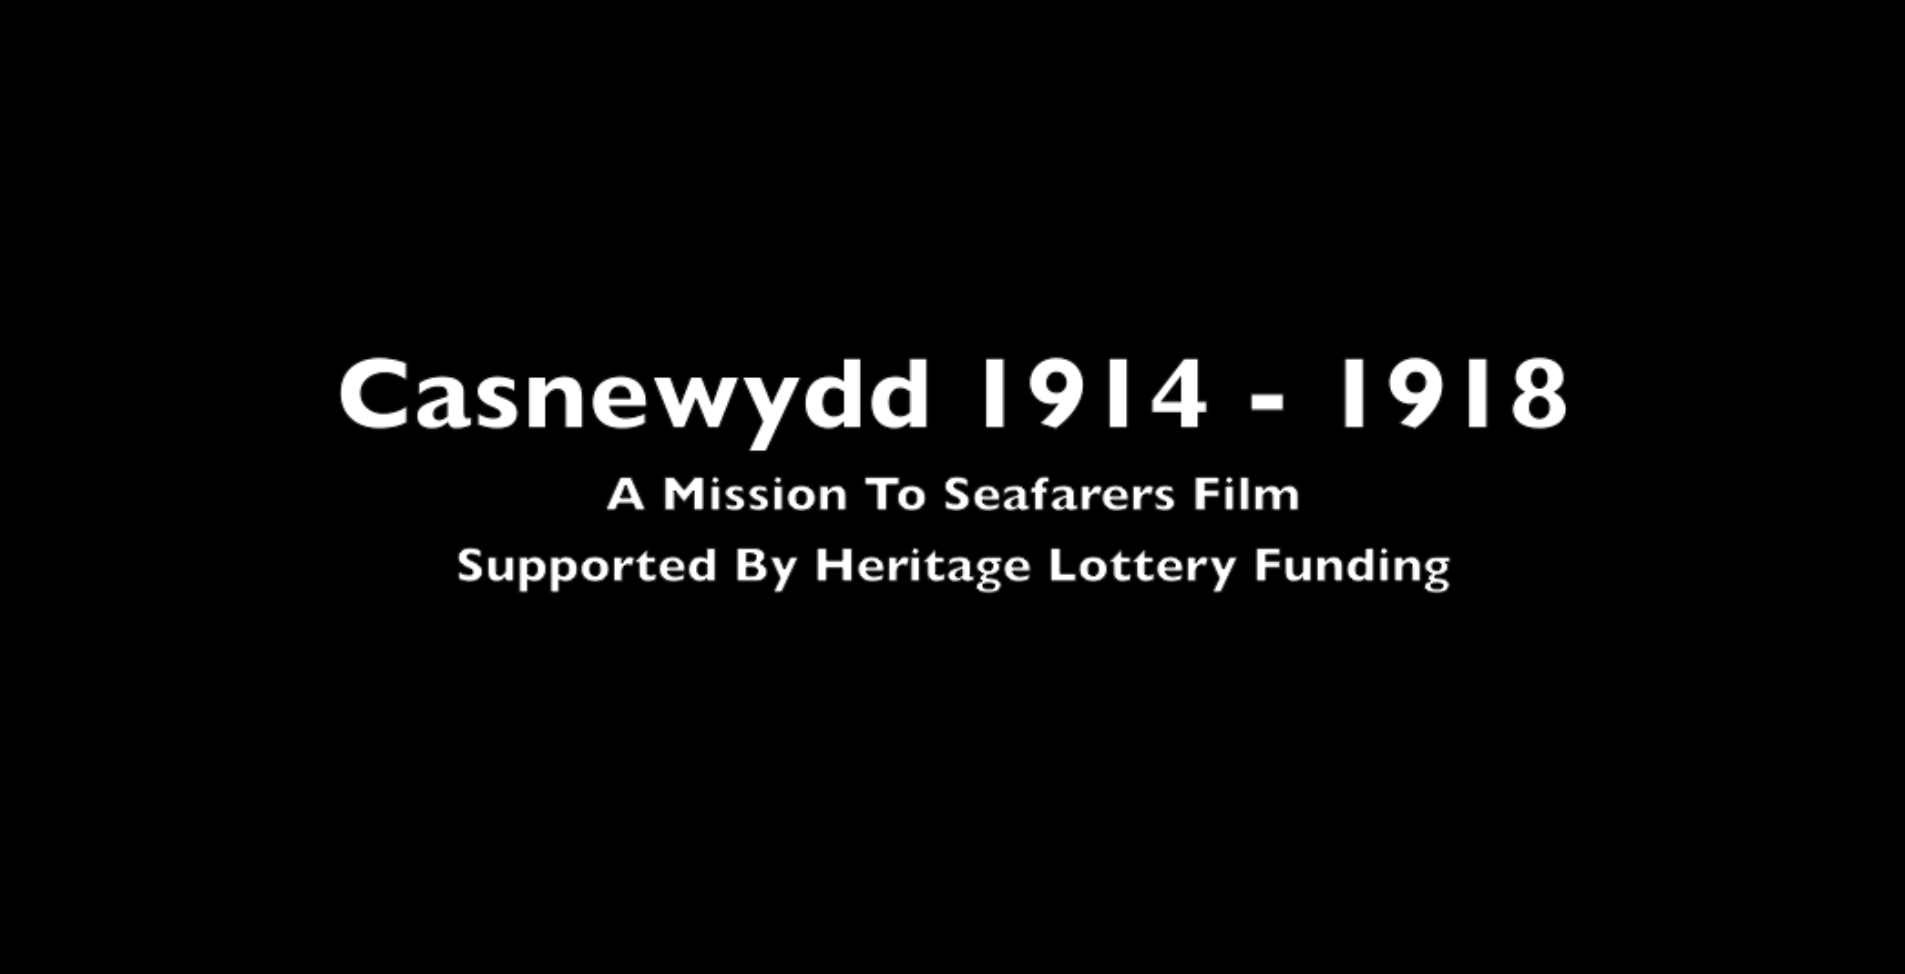 Newport 1914-1918 (Welsh version)